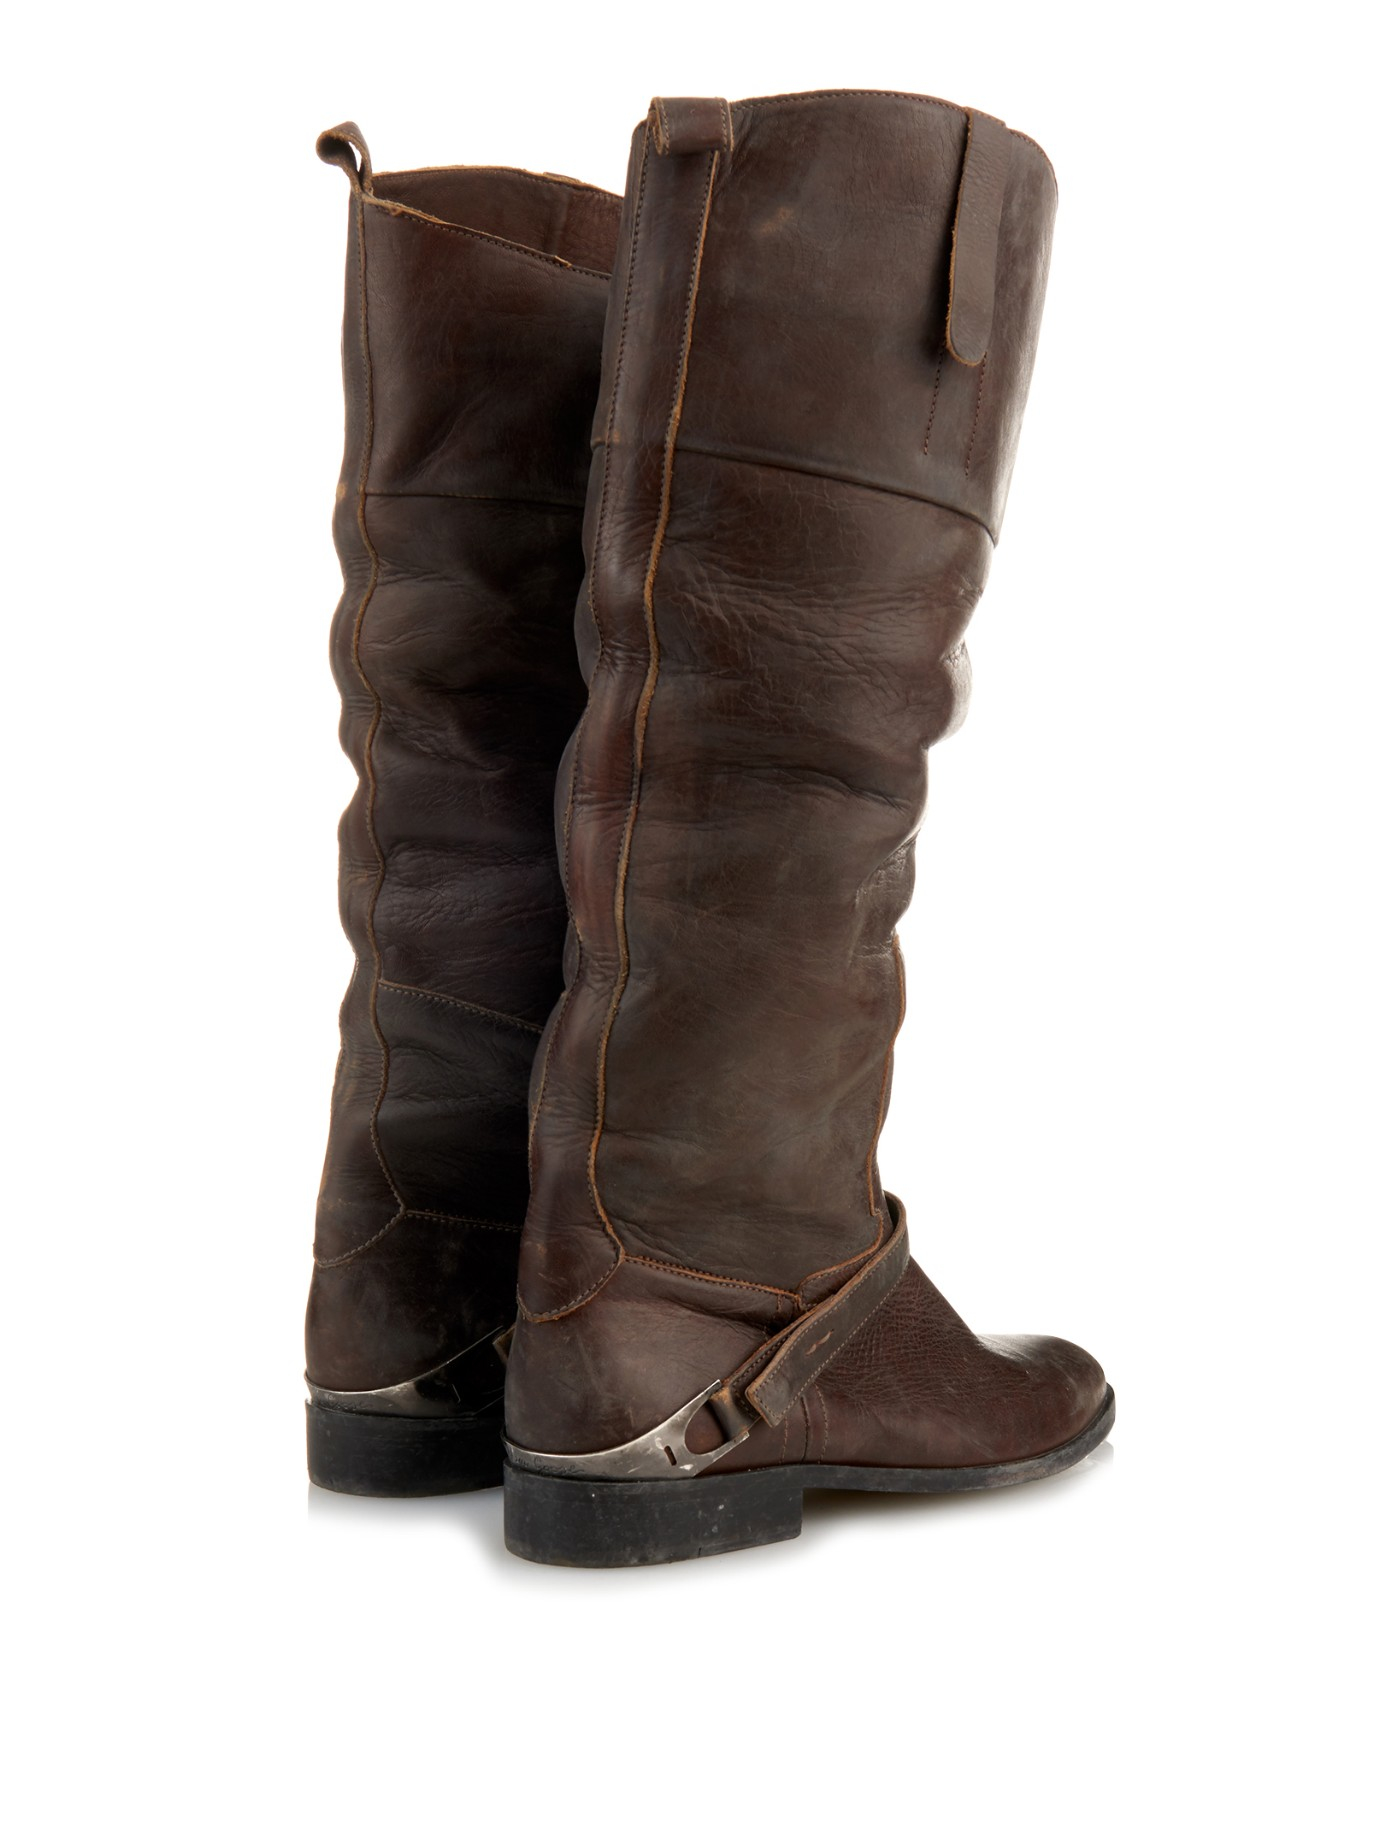 Golden Goose Leather Riding Boots b4JJnKm7